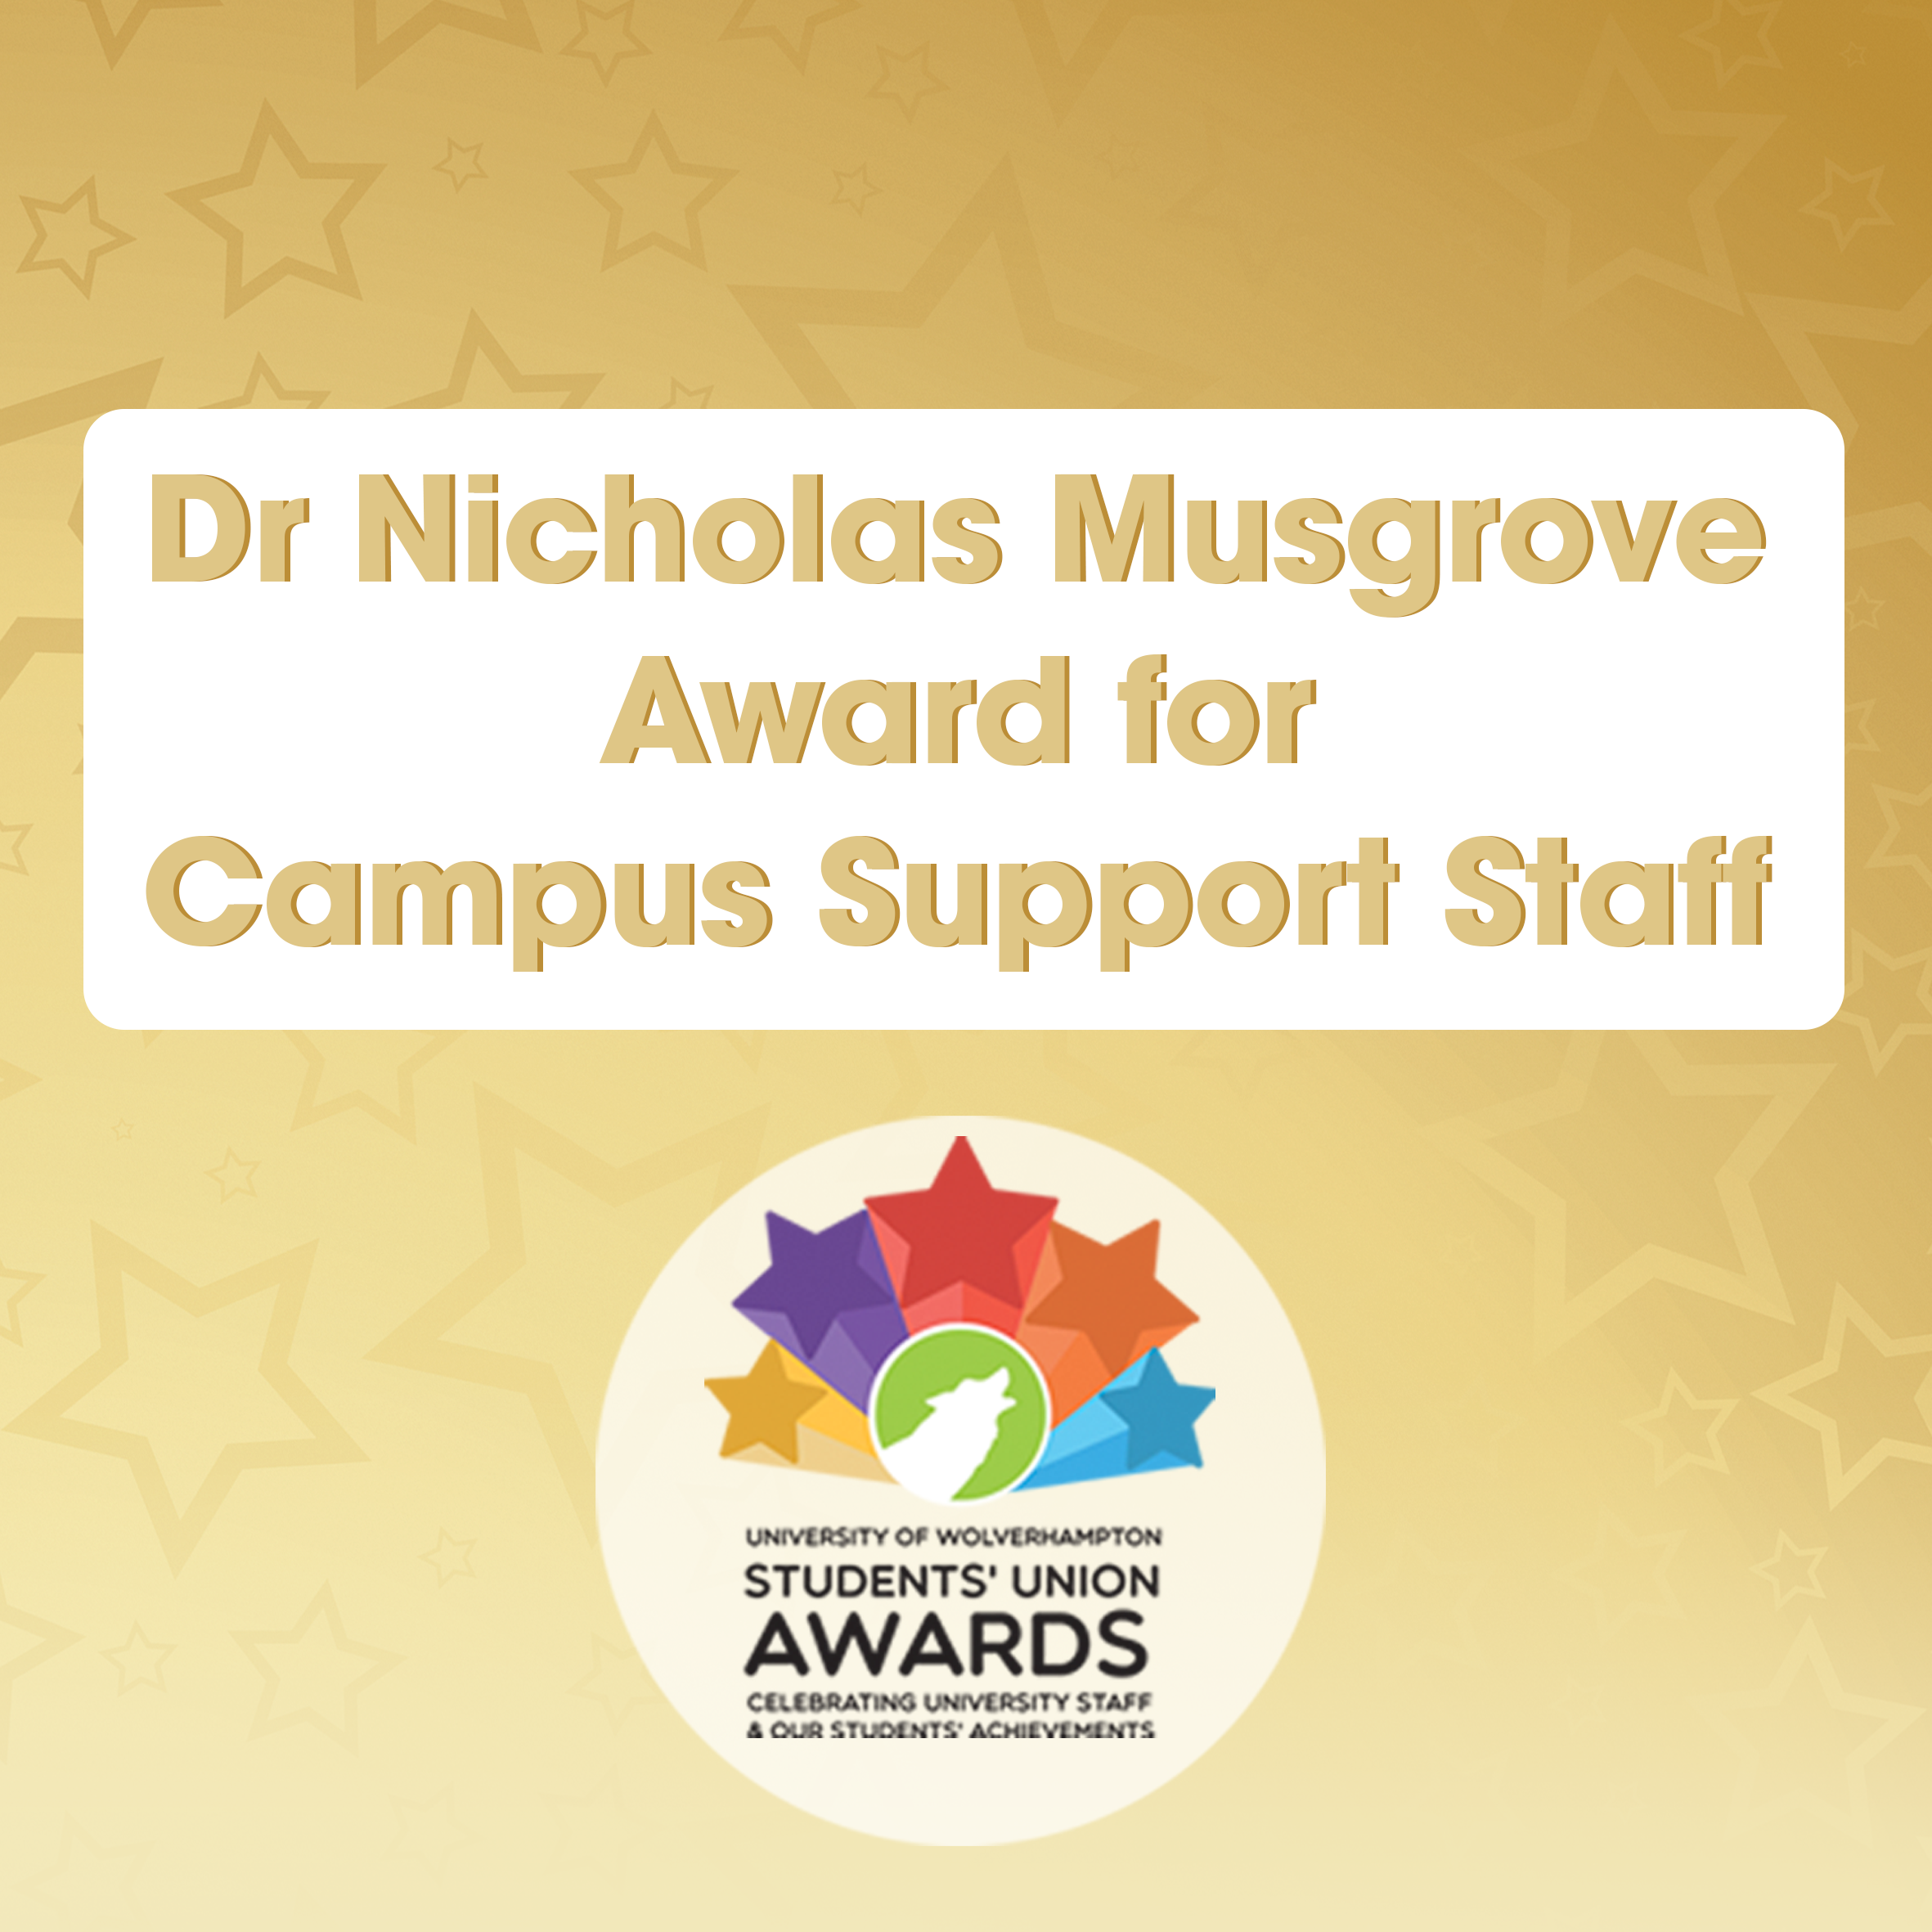 Dr Nicholas Musgrove Award for Campus Support Staff